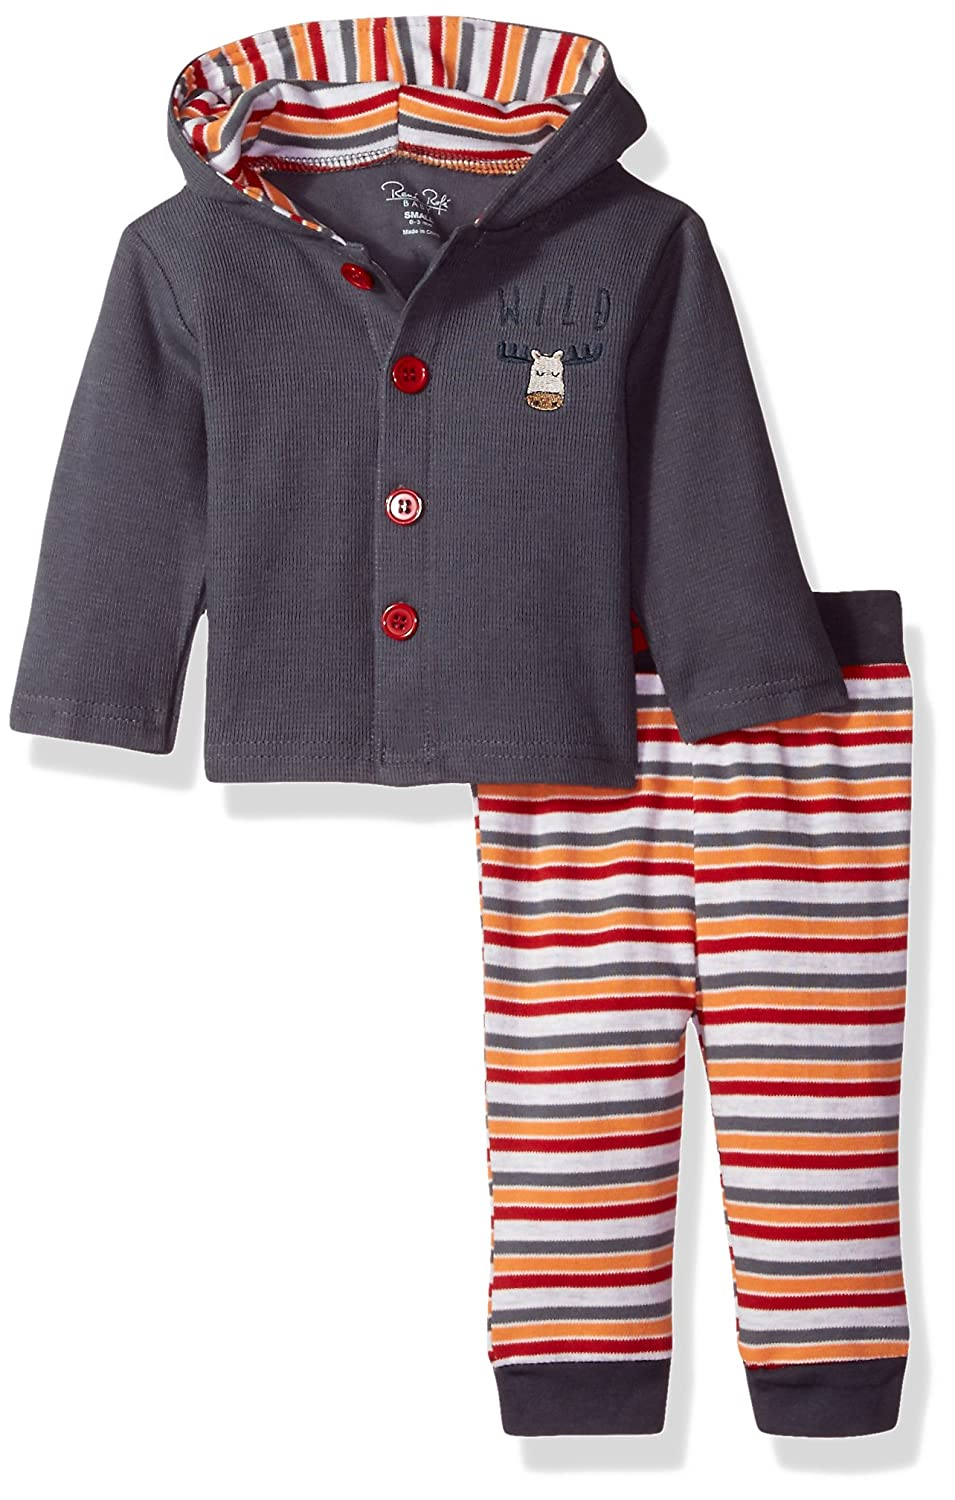 242638775 Rene Rofe Baby Baby-Boys Little Kids Newborn Unisex 2 Piece Cardigan and  Pant Set: Amazon.ca: Clothing & Accessories